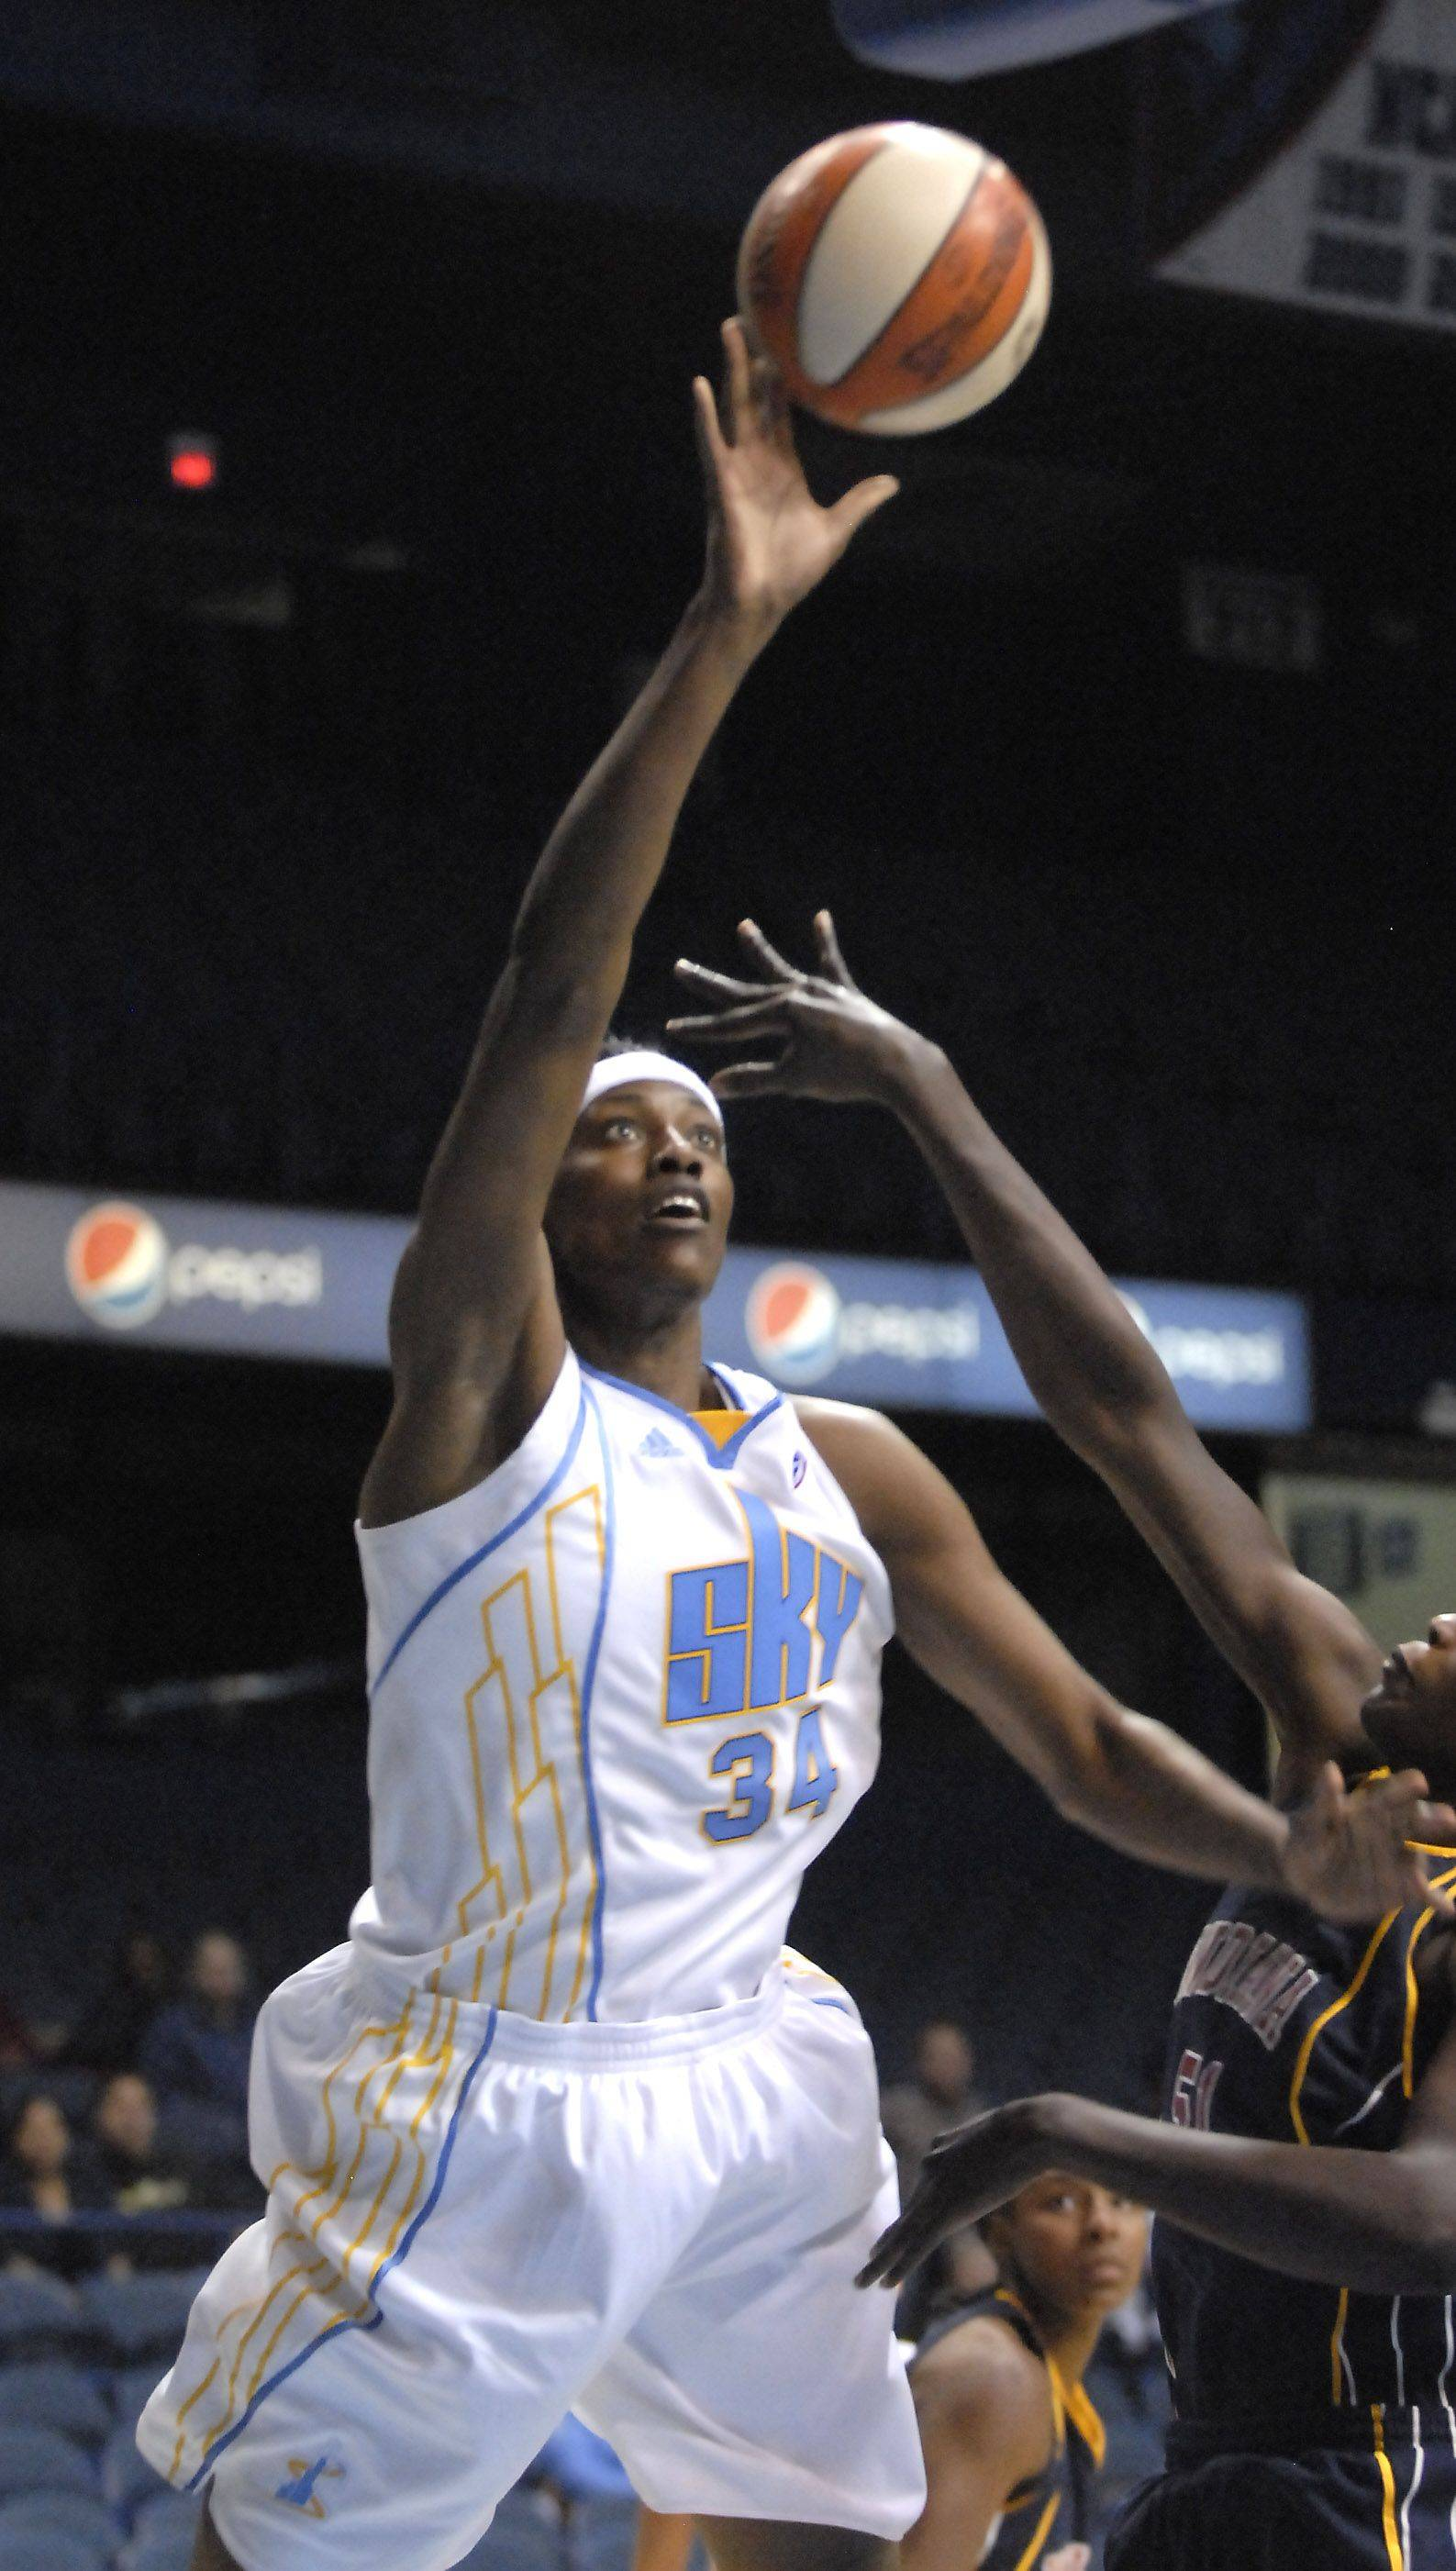 Sylvia Fowles has been an all-star for the Sky. Will the team be trying to add another versatile frontcourt player via the WNBA Draft Monday?